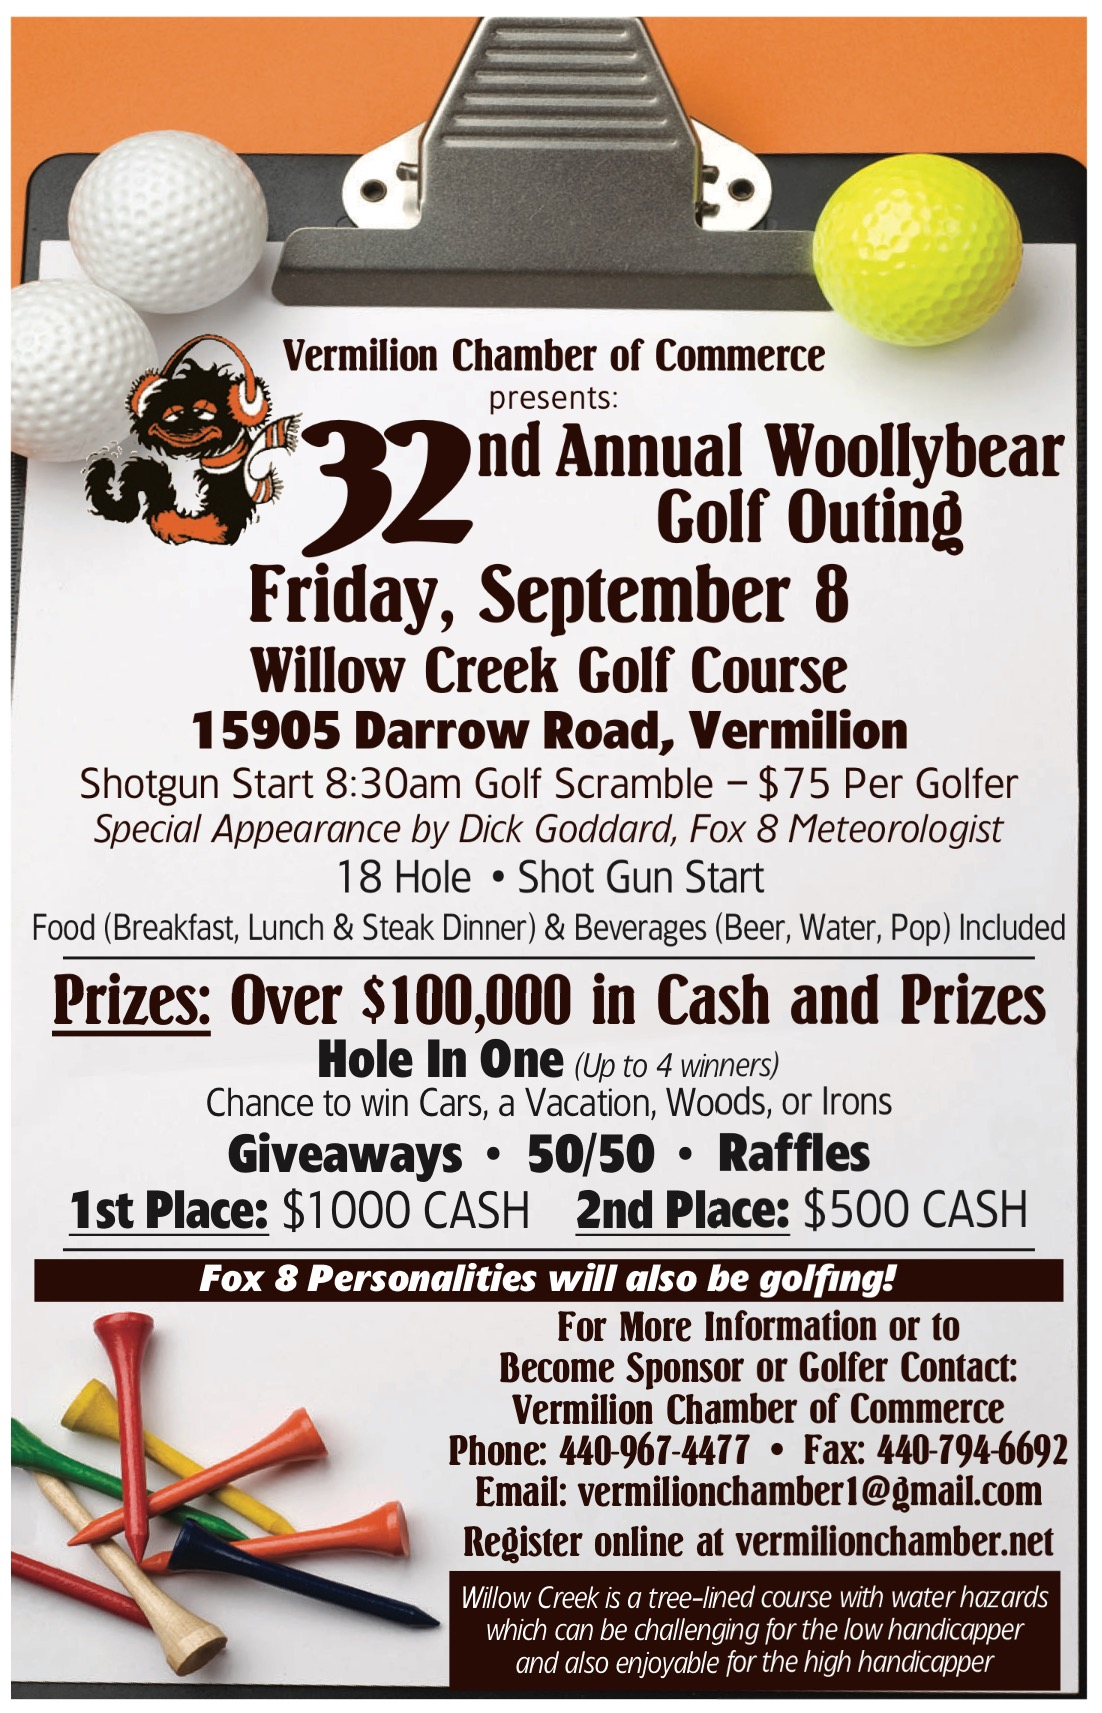 Woolybear-Golf-Outing-2017-flier.png